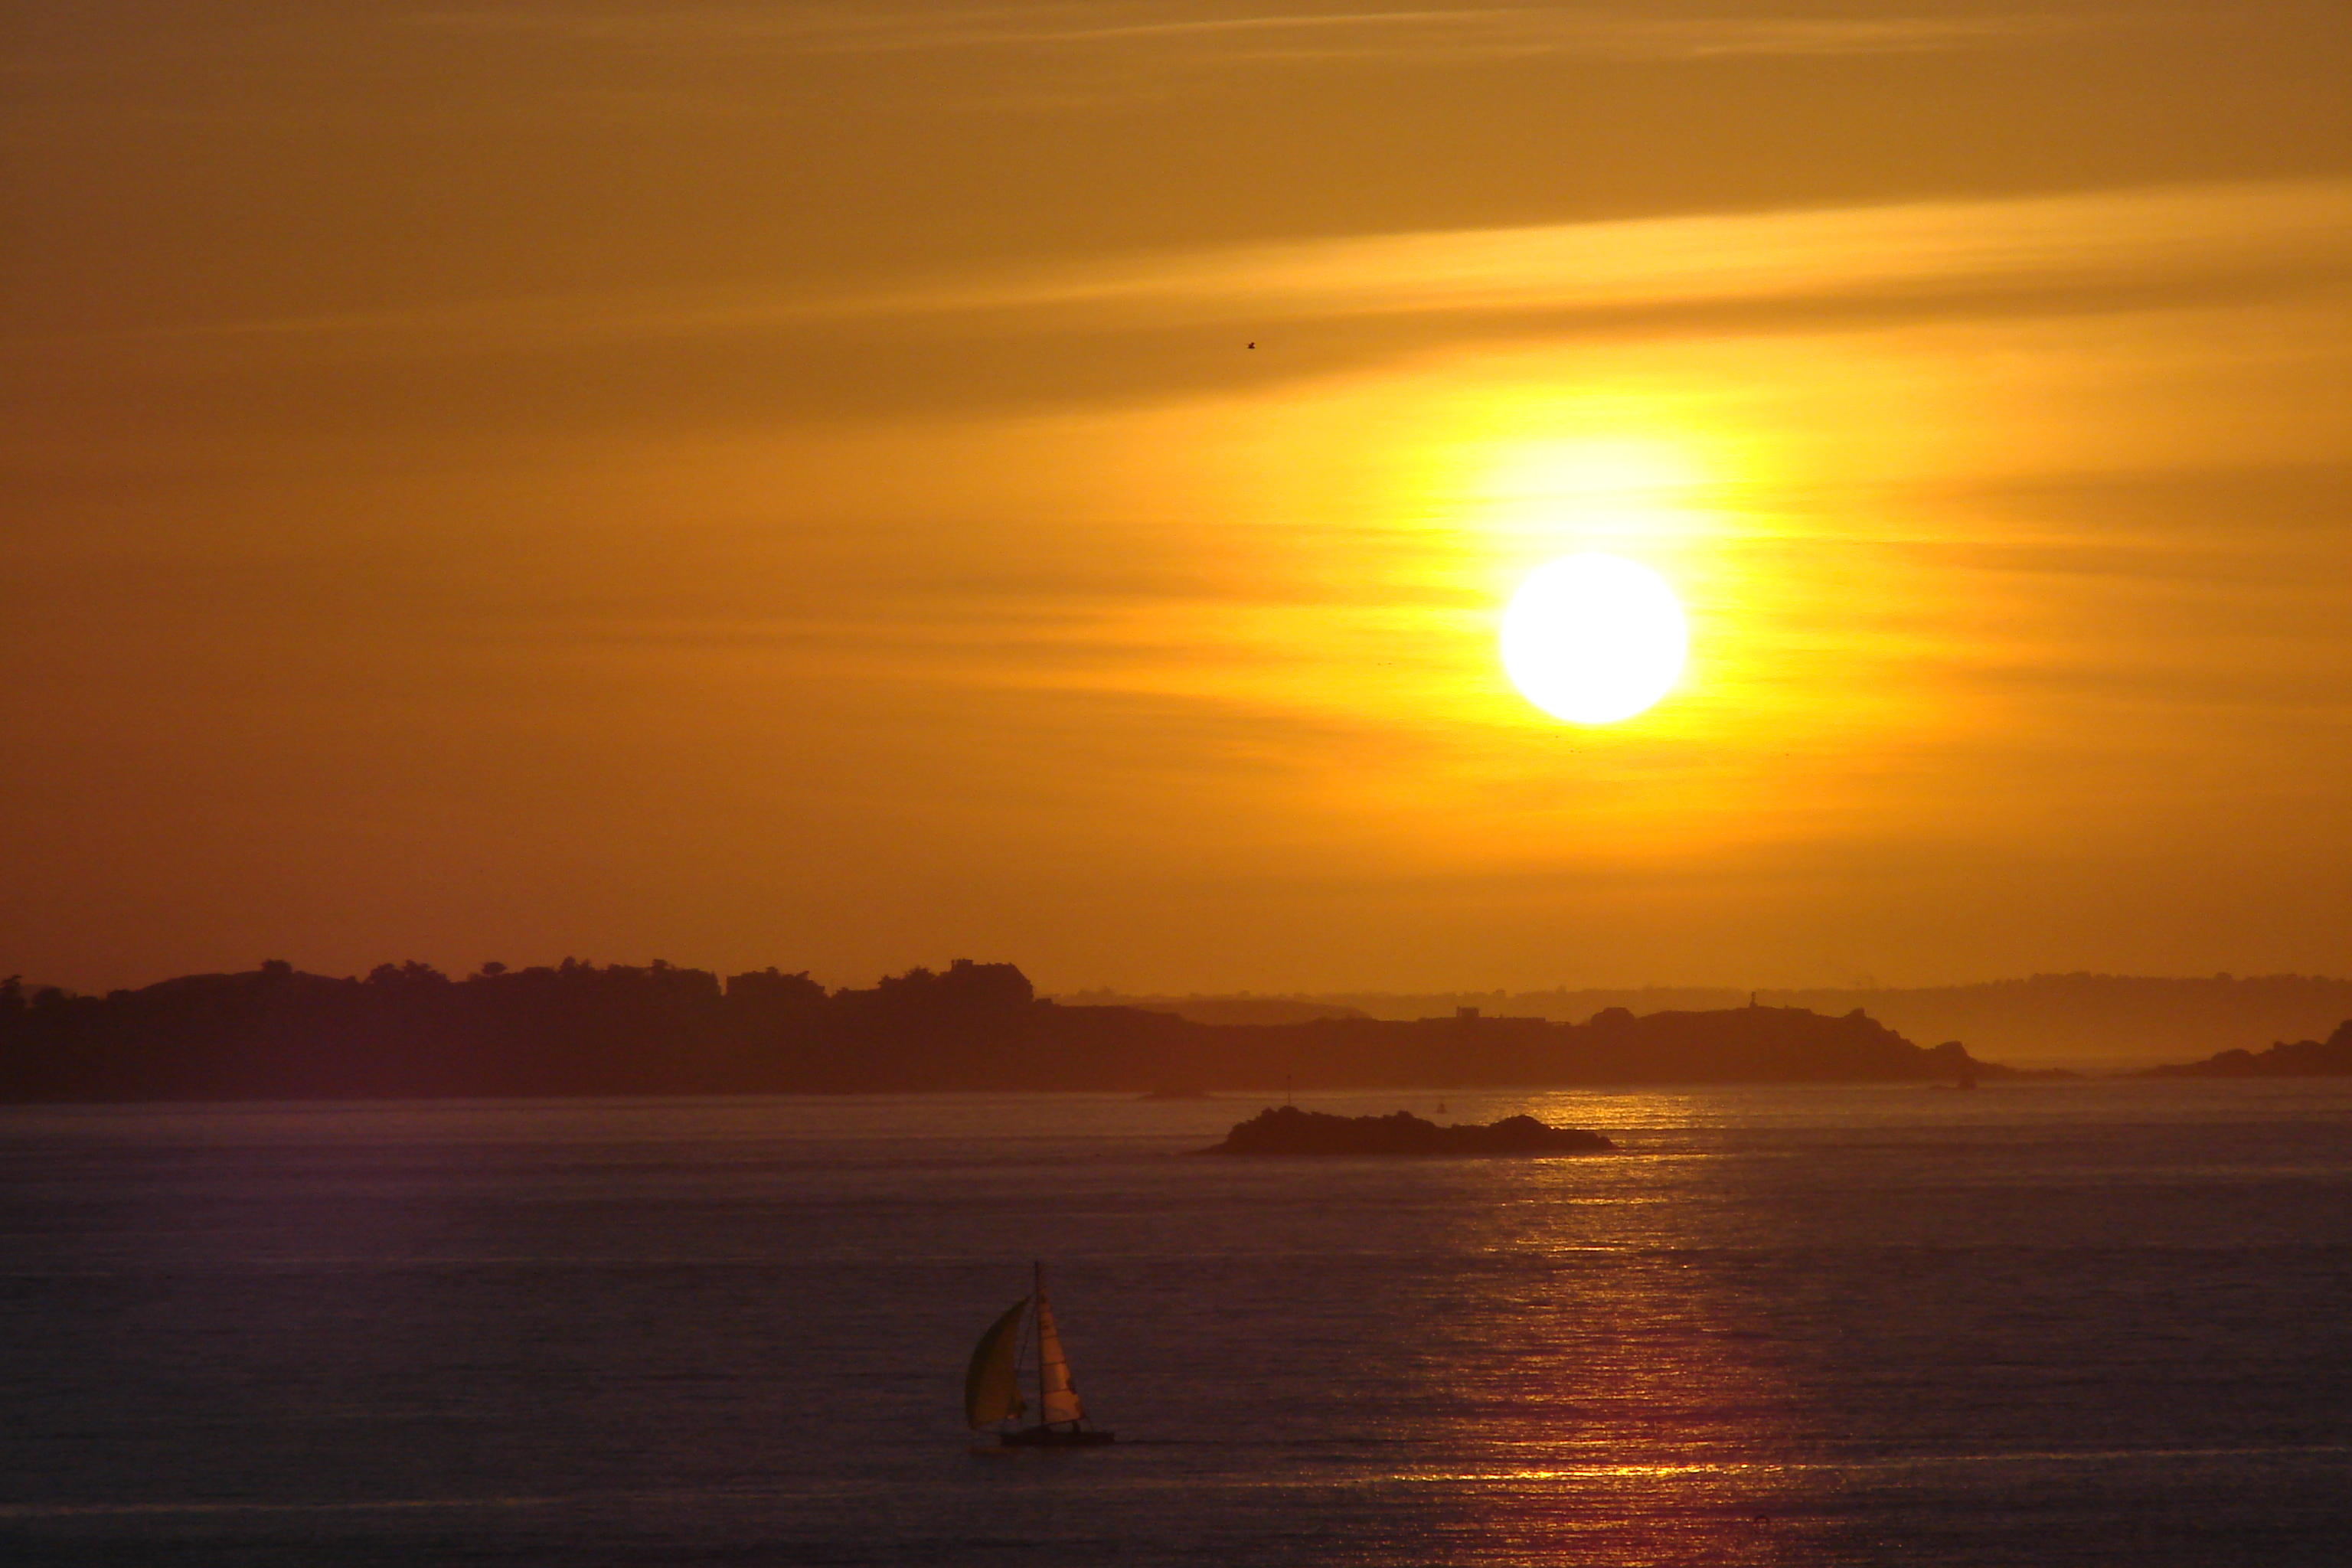 File:Sunset on a cool spring day in St Malo, France.JPG  Wikimedia